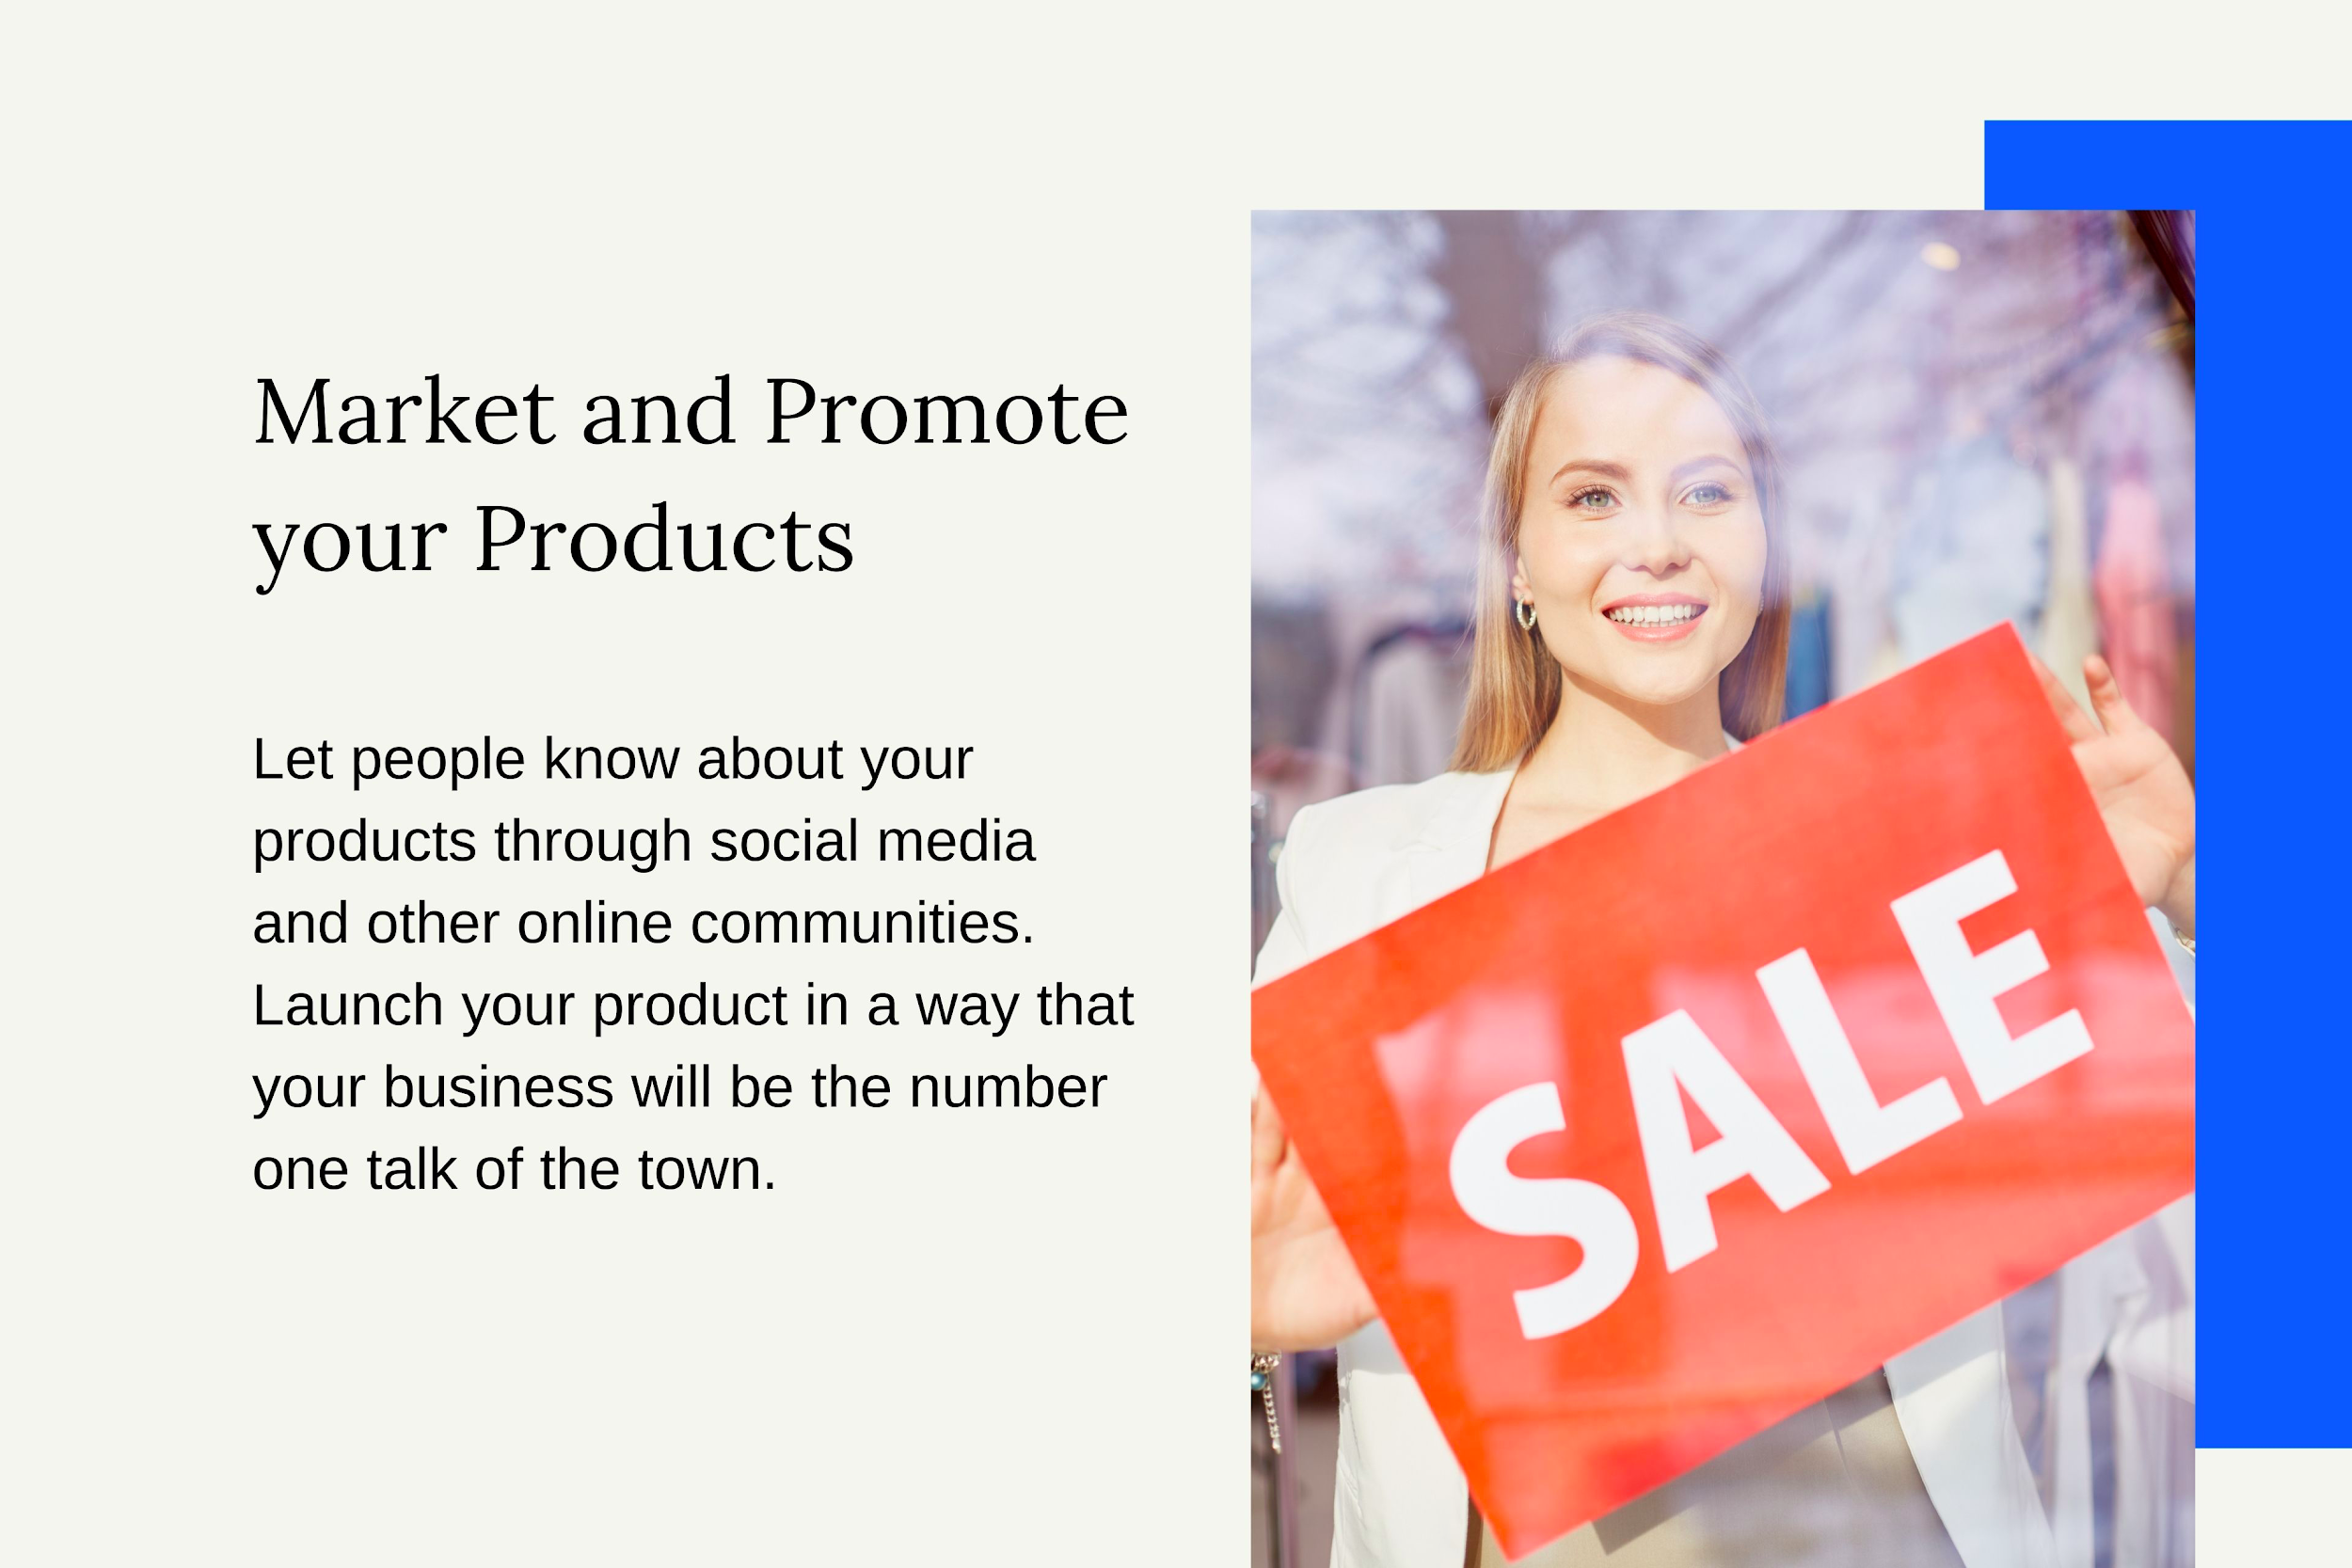 Market and Promote your Products